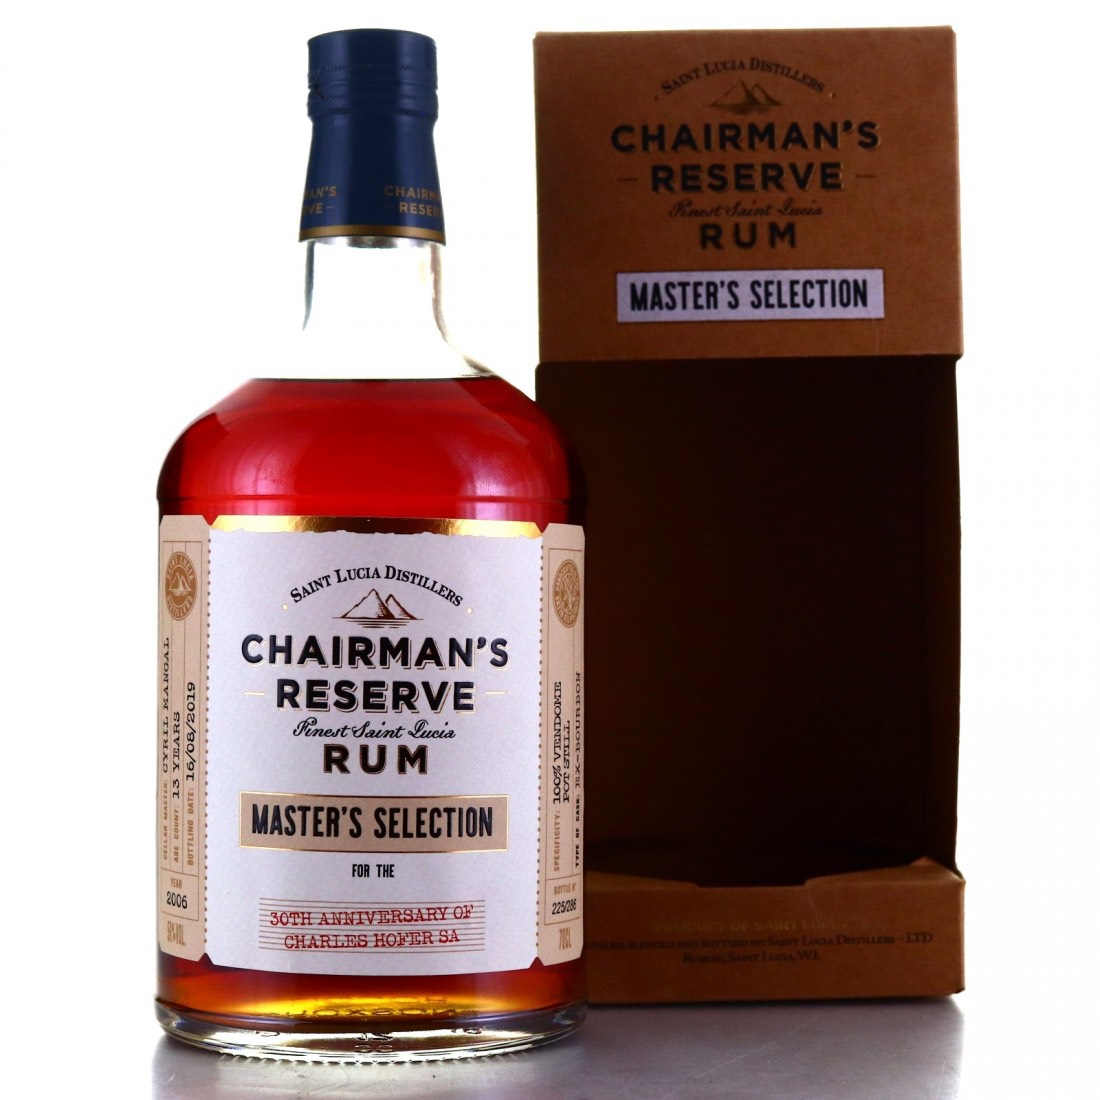 Bottle image of Chairman's Reserve Master's Selection 30th Anniversary of Charles Hofer